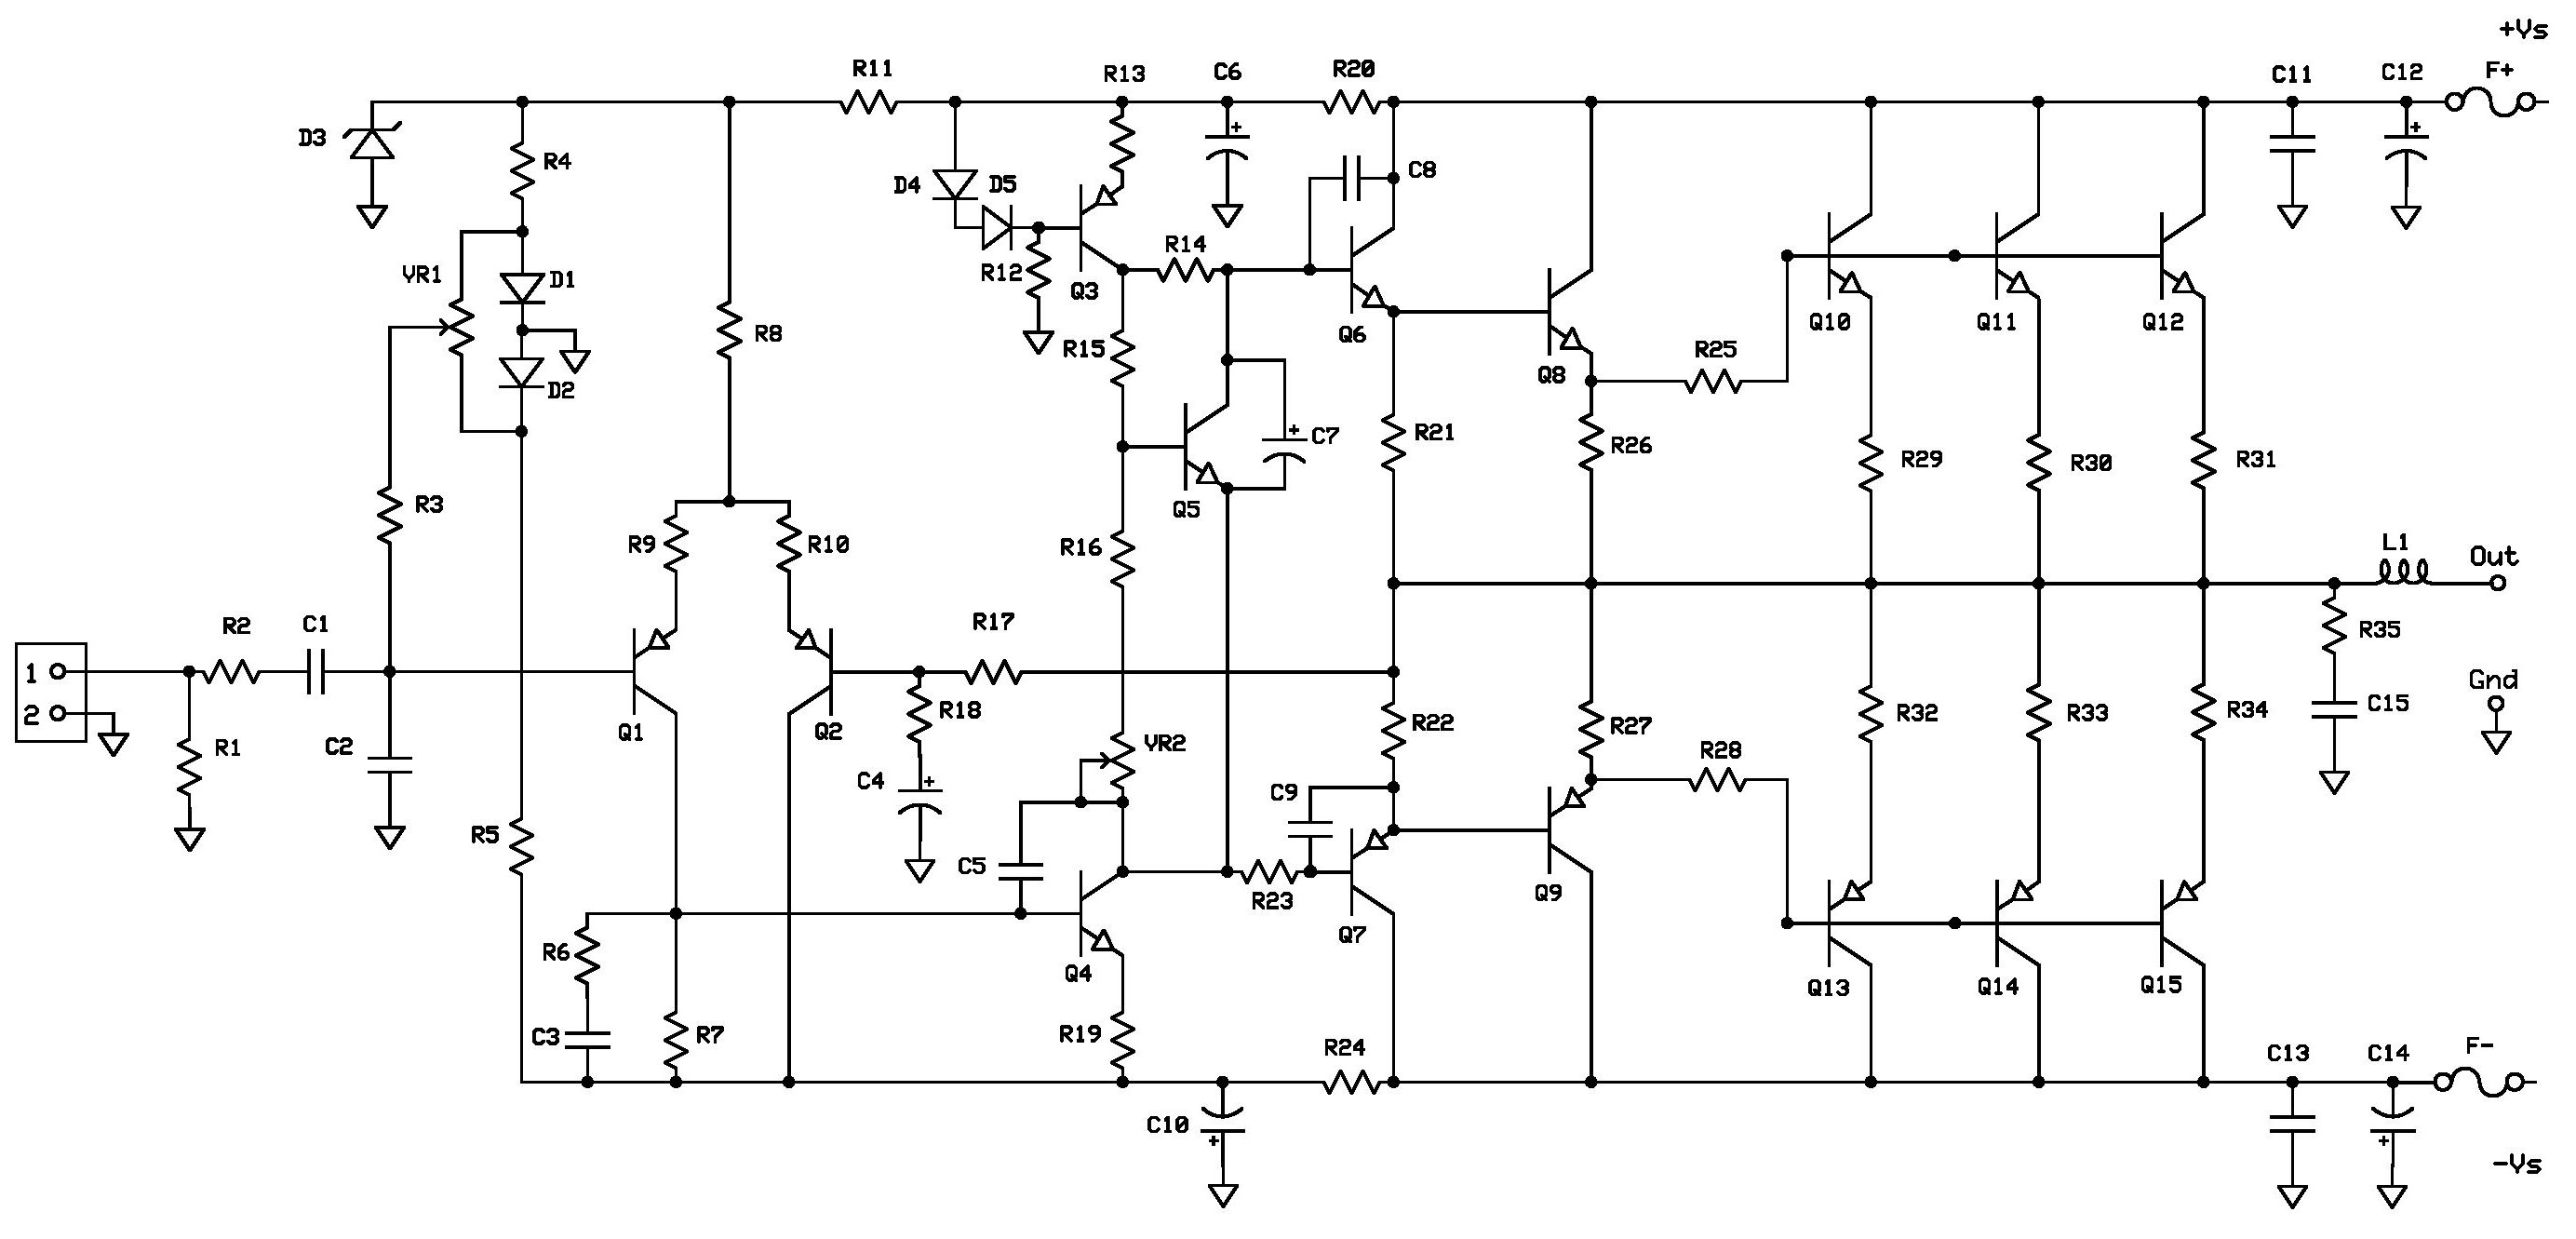 T Amp Circuit Diagram Wiring Library Project Project2 Schematic Page 001